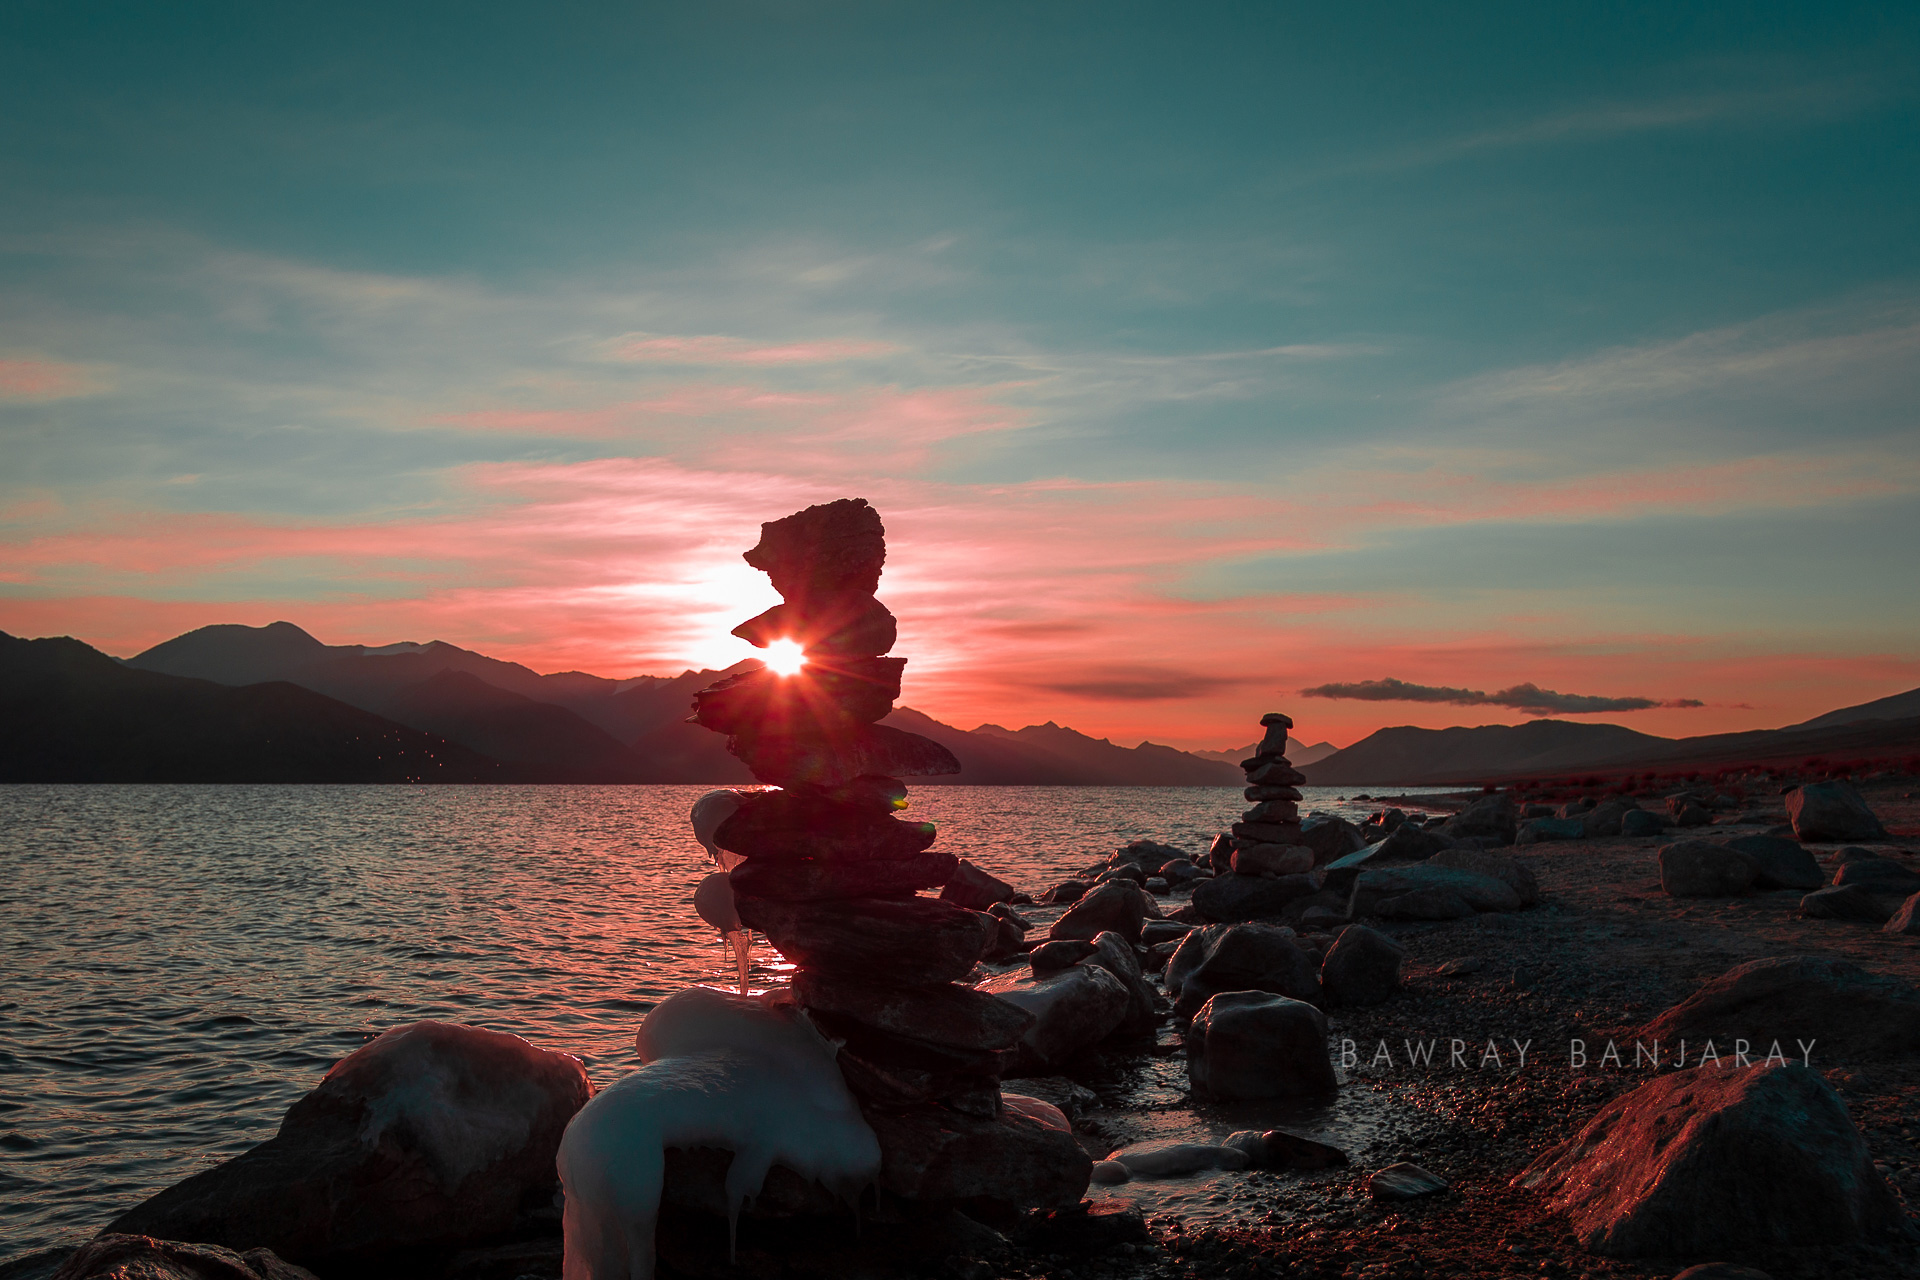 Sunset at Pangong Tso